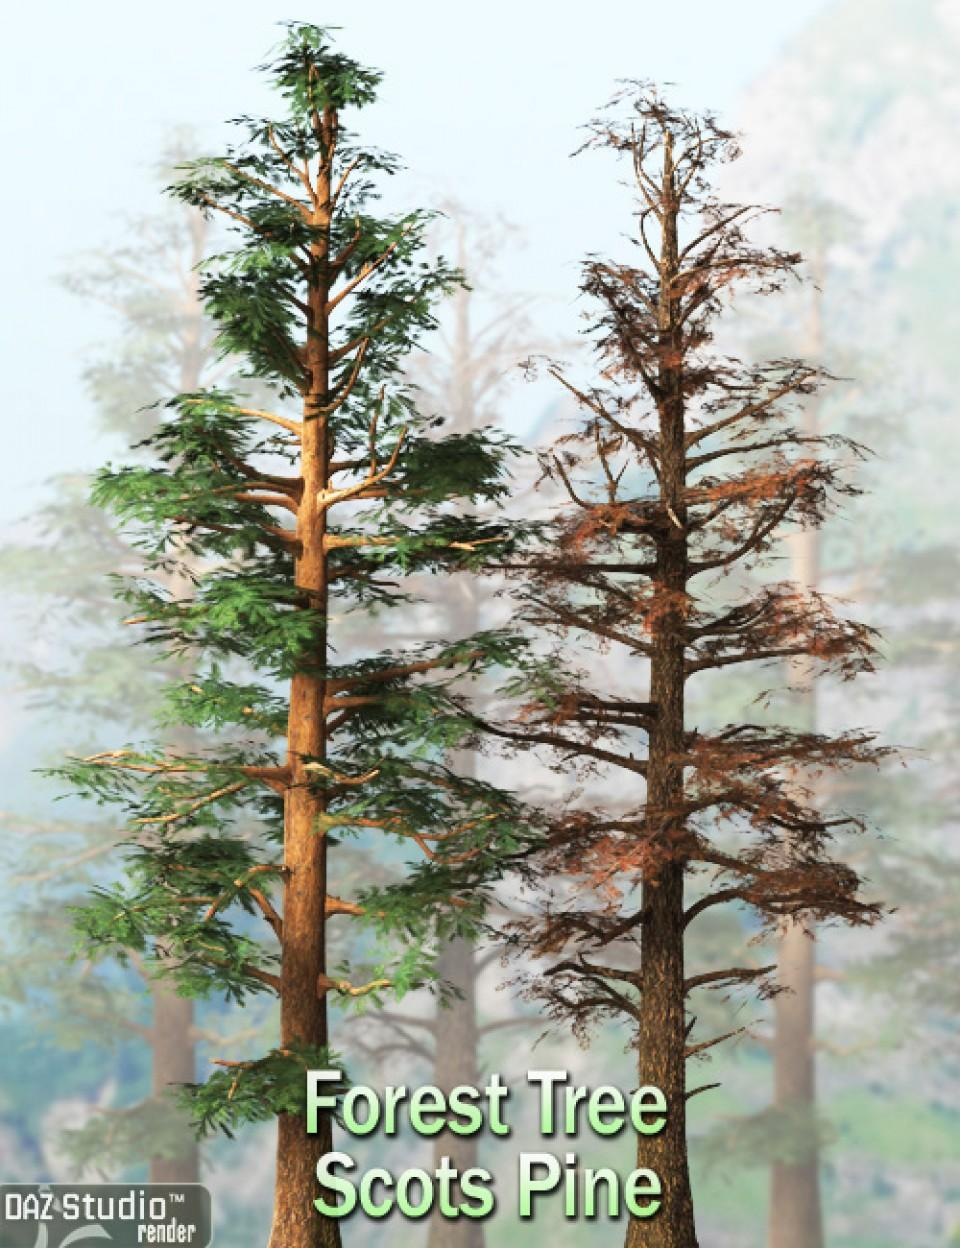 Forest Tree - Scots Pine